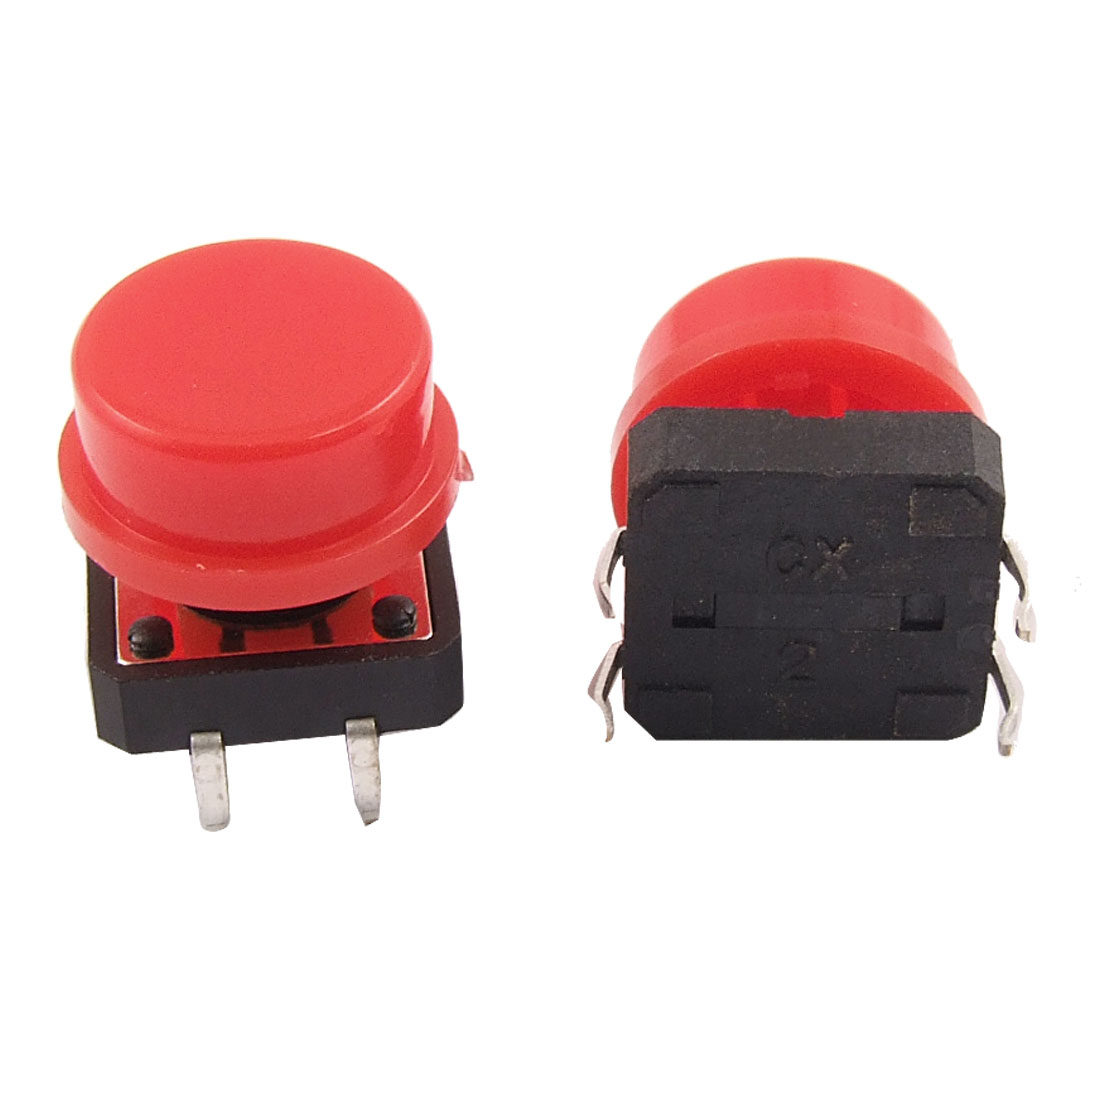 10 Pcs Red Cap Momentary Tact Tactile Bush Button Switch 4 Pin 12 x 12mm x 11mm